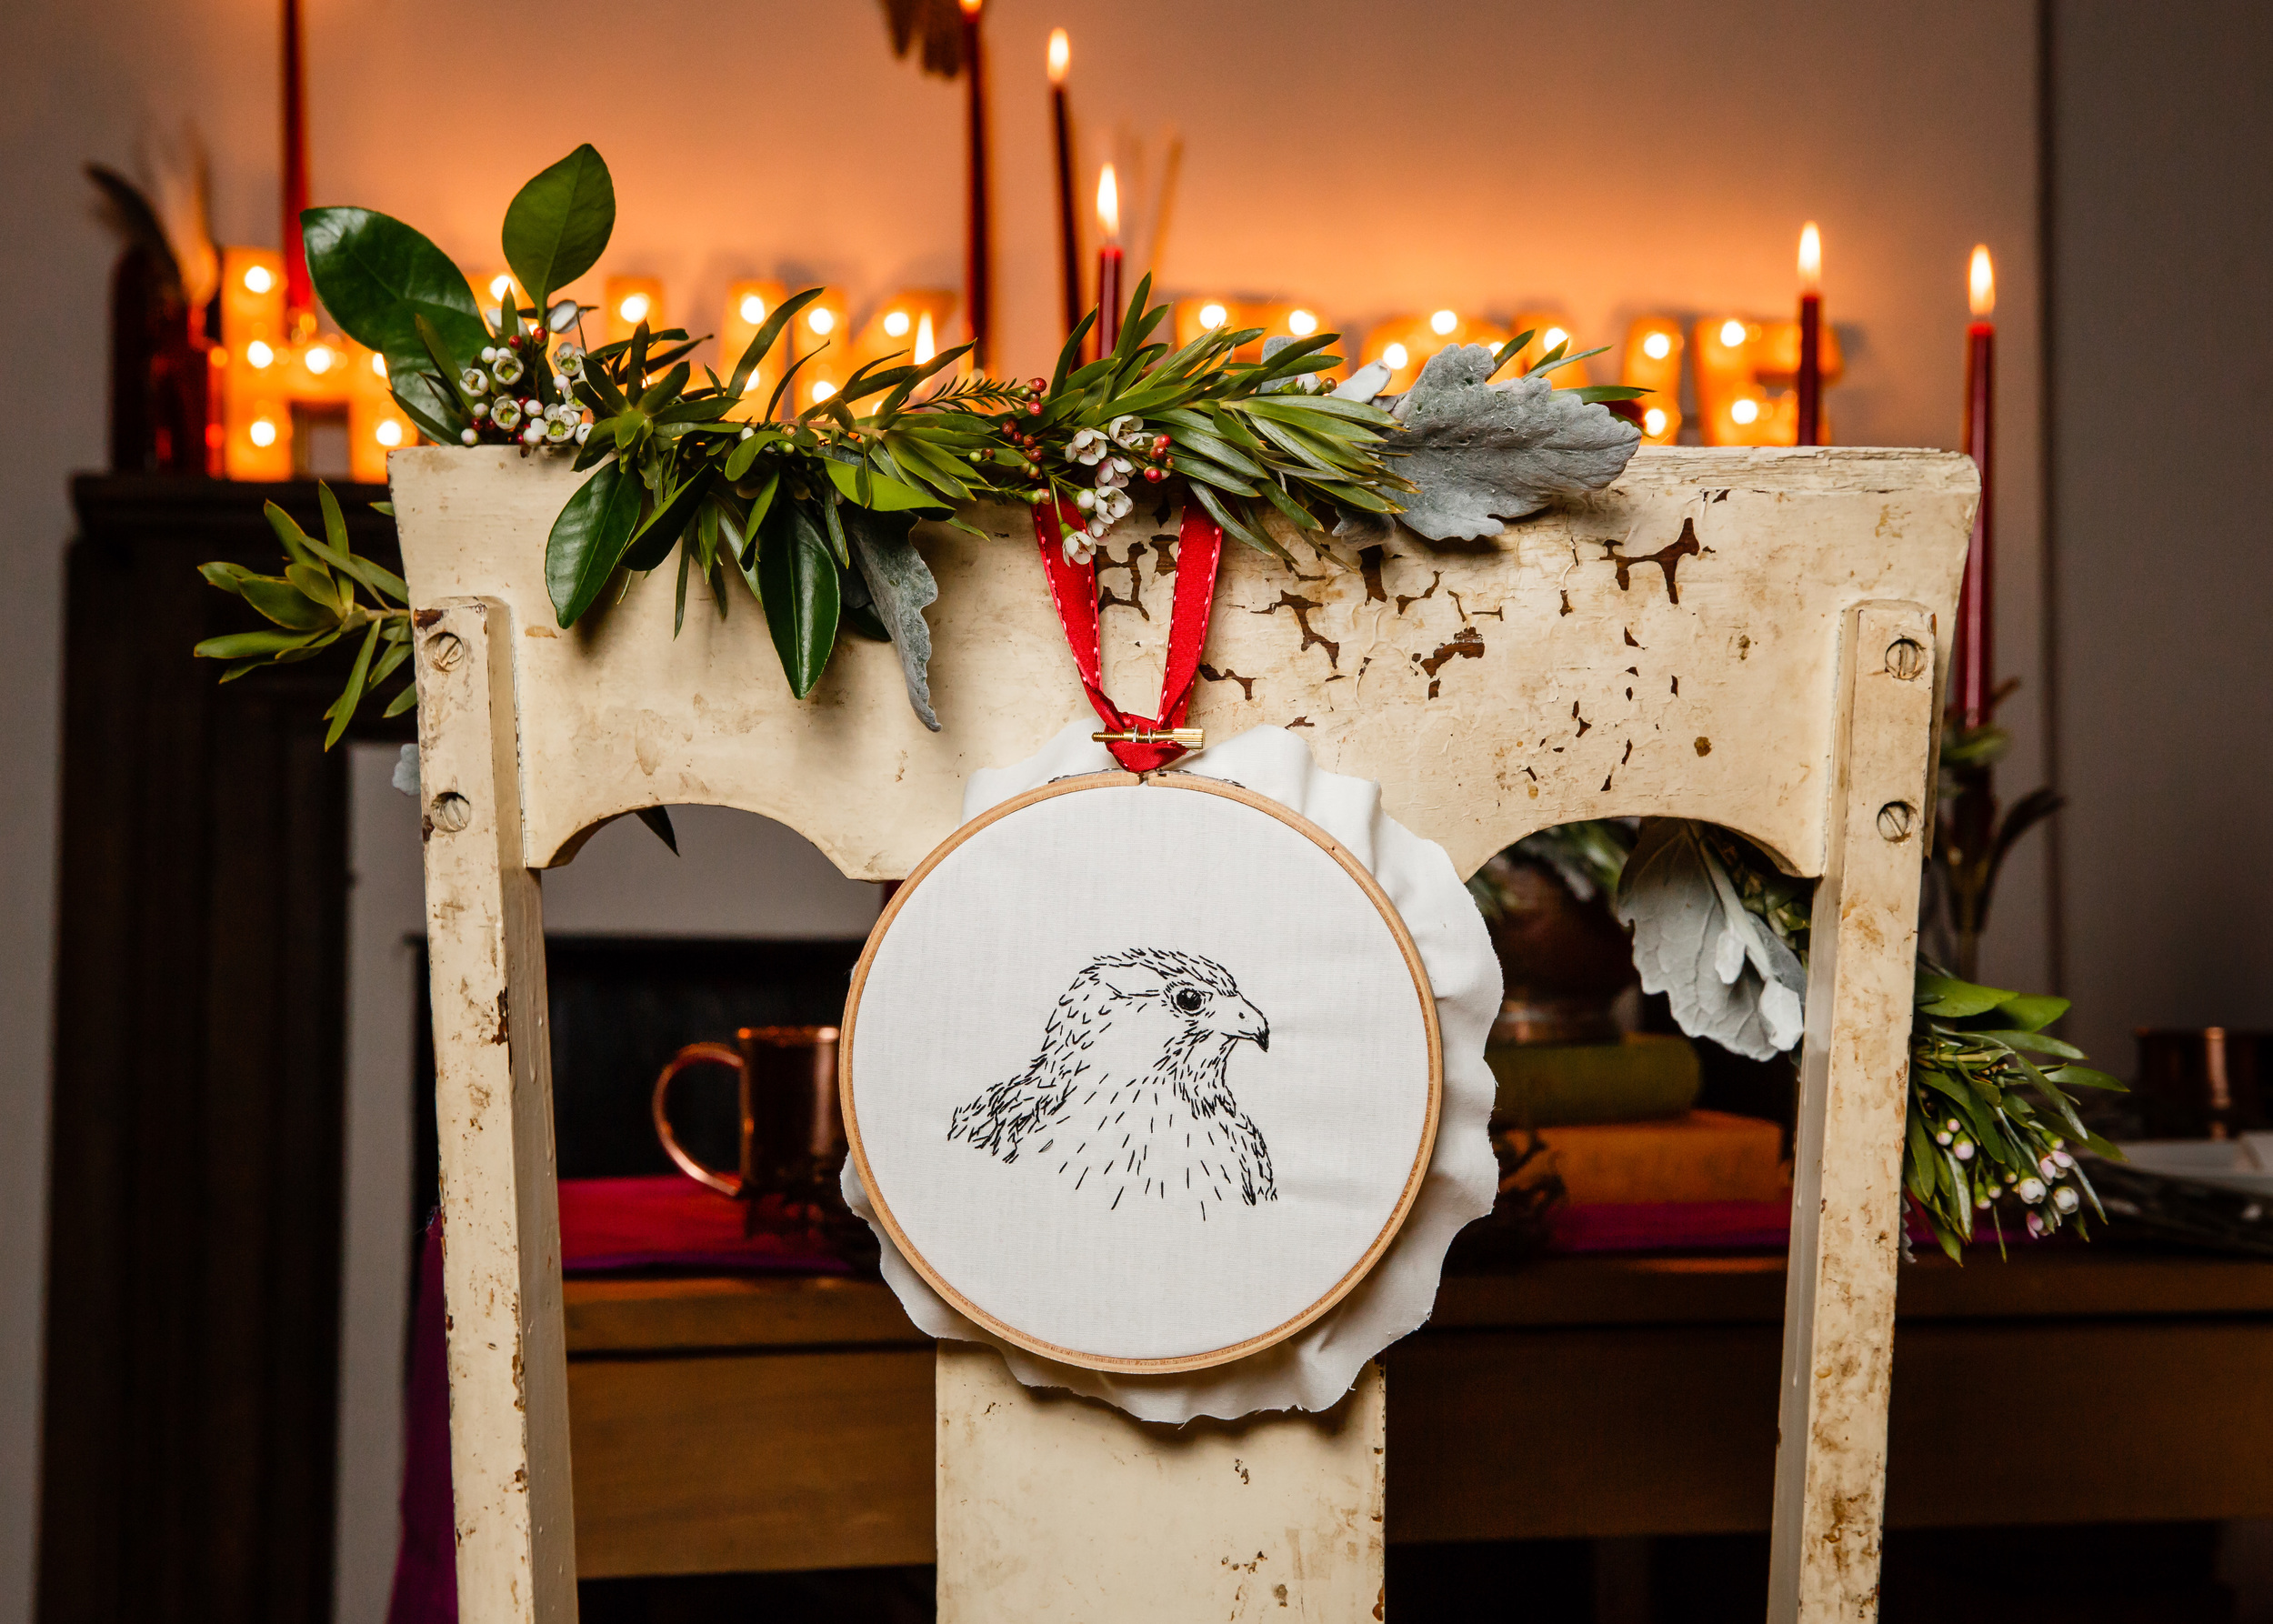 I embroidered these chair back embroideries of a hawk and dove as well. The garland created by Flower Scout really paired well with them.